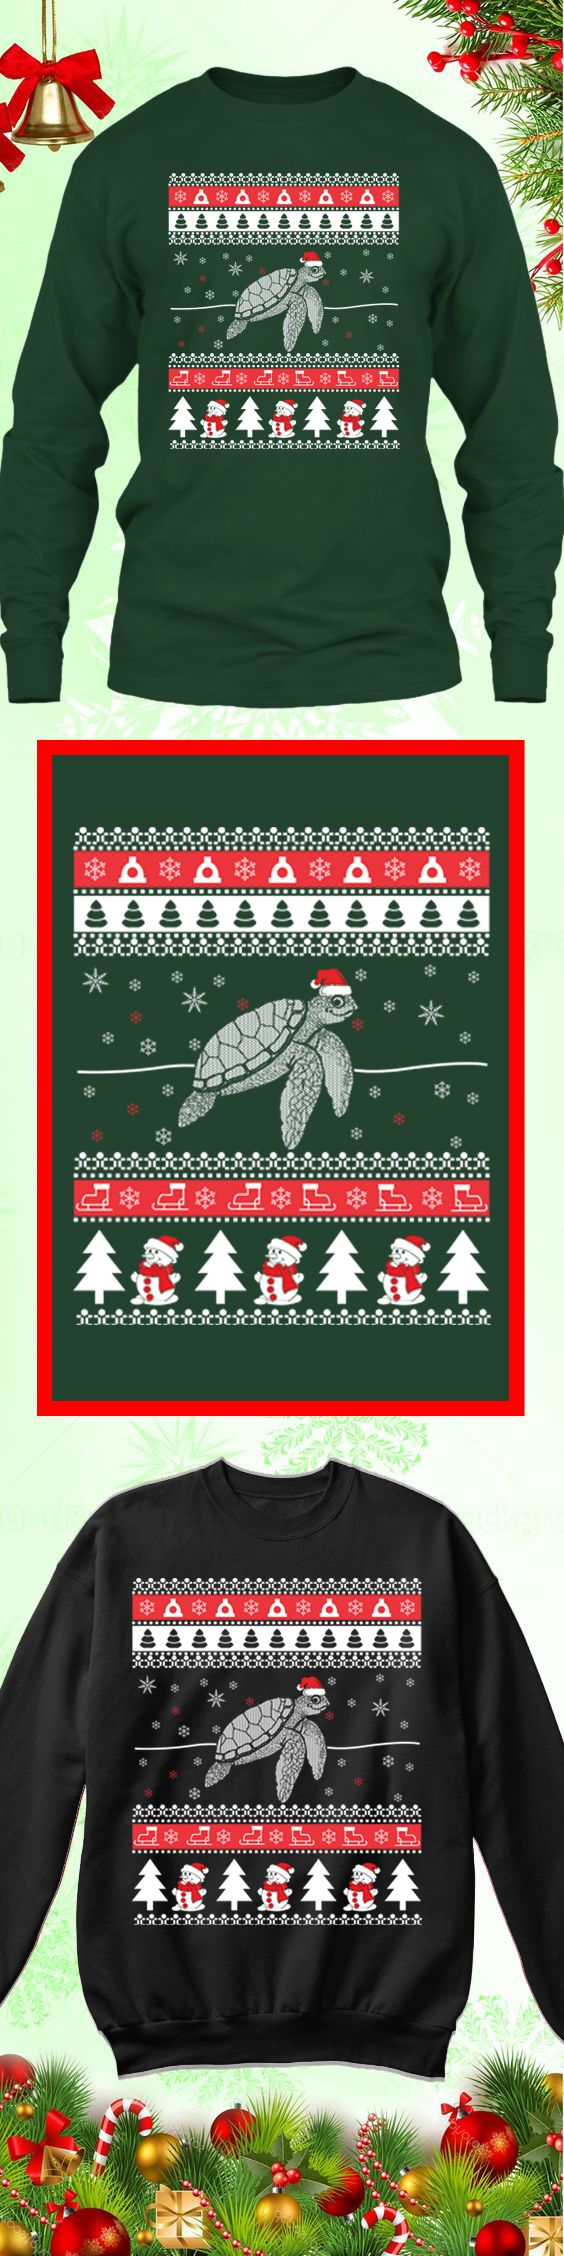 Need a last minute Christmas Gift? Get this limited edition Turtle Ugly Christmas Sweater while supplies last! Buy 2 or more, save on shipping!